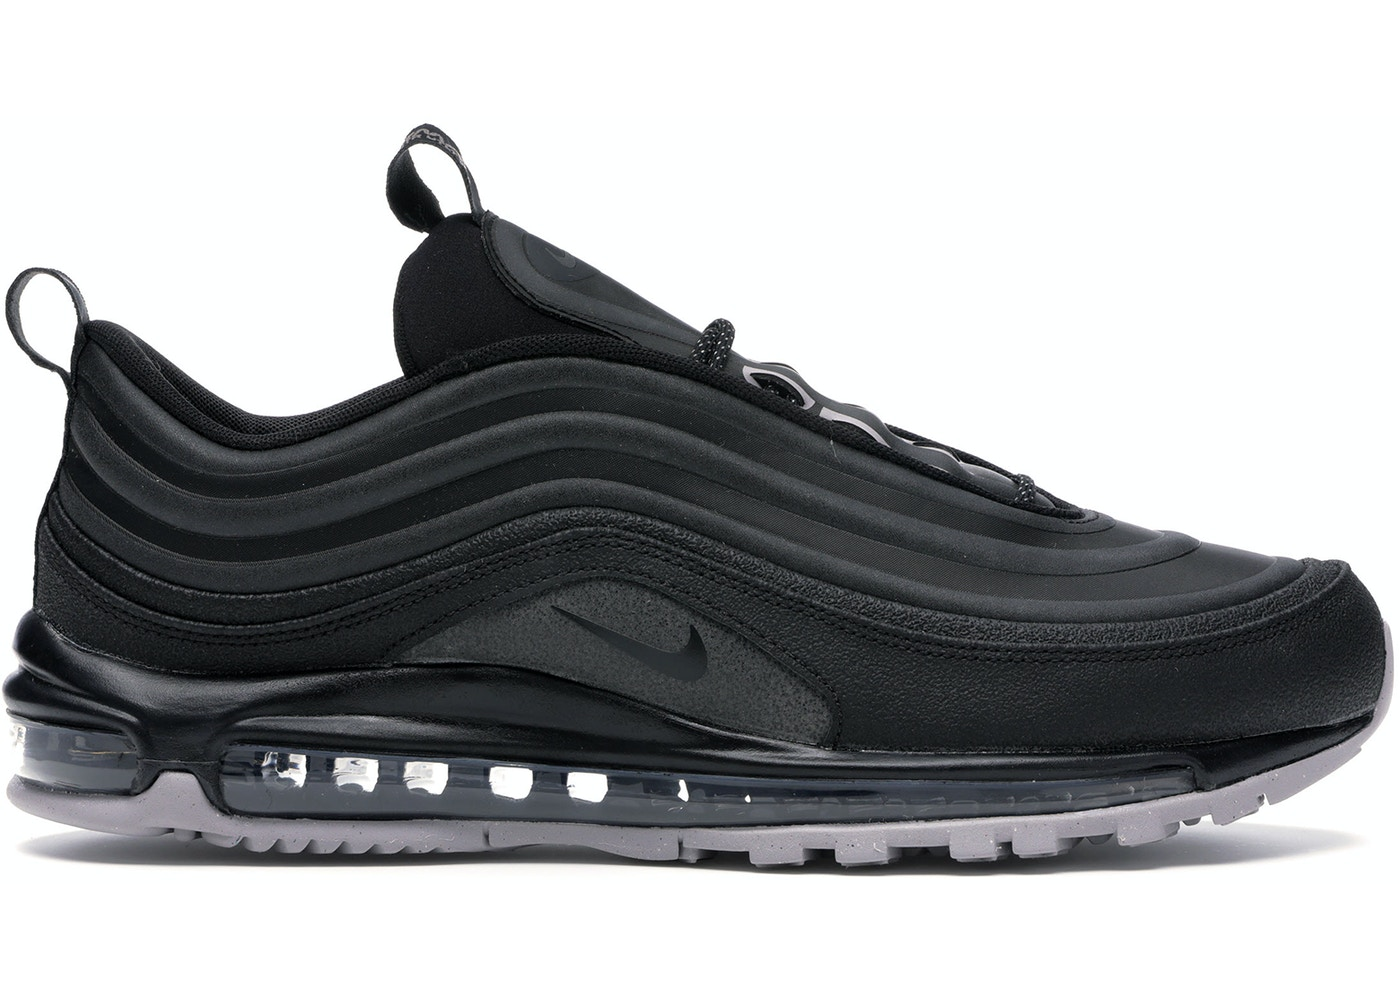 Nike Air Max 97 Utility Black Cool Grey Bq5615 001